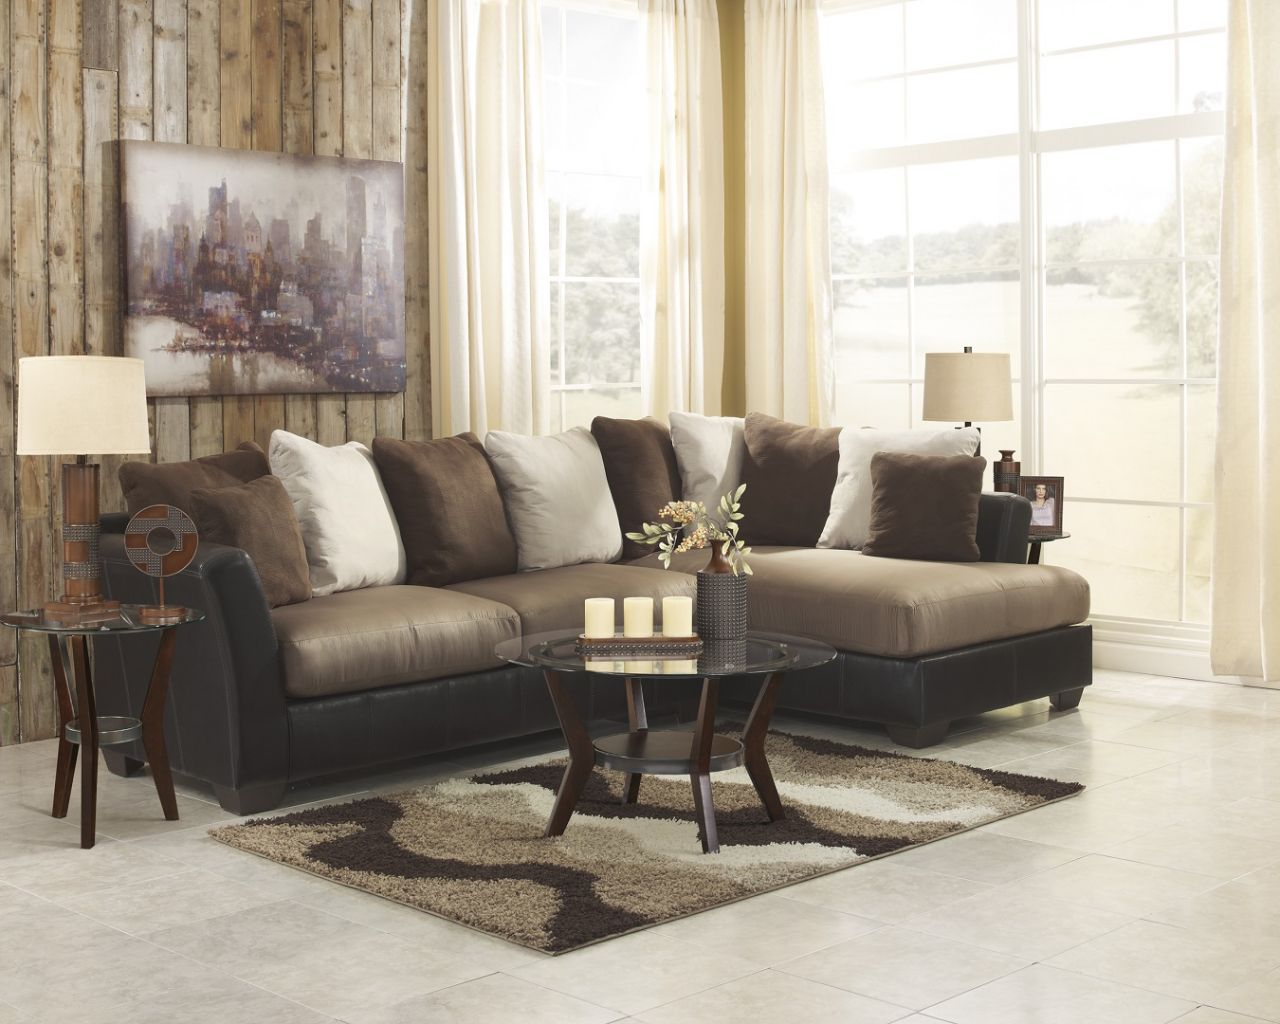 Chenille Sofa S Ultimate Soft Fabric And Durable